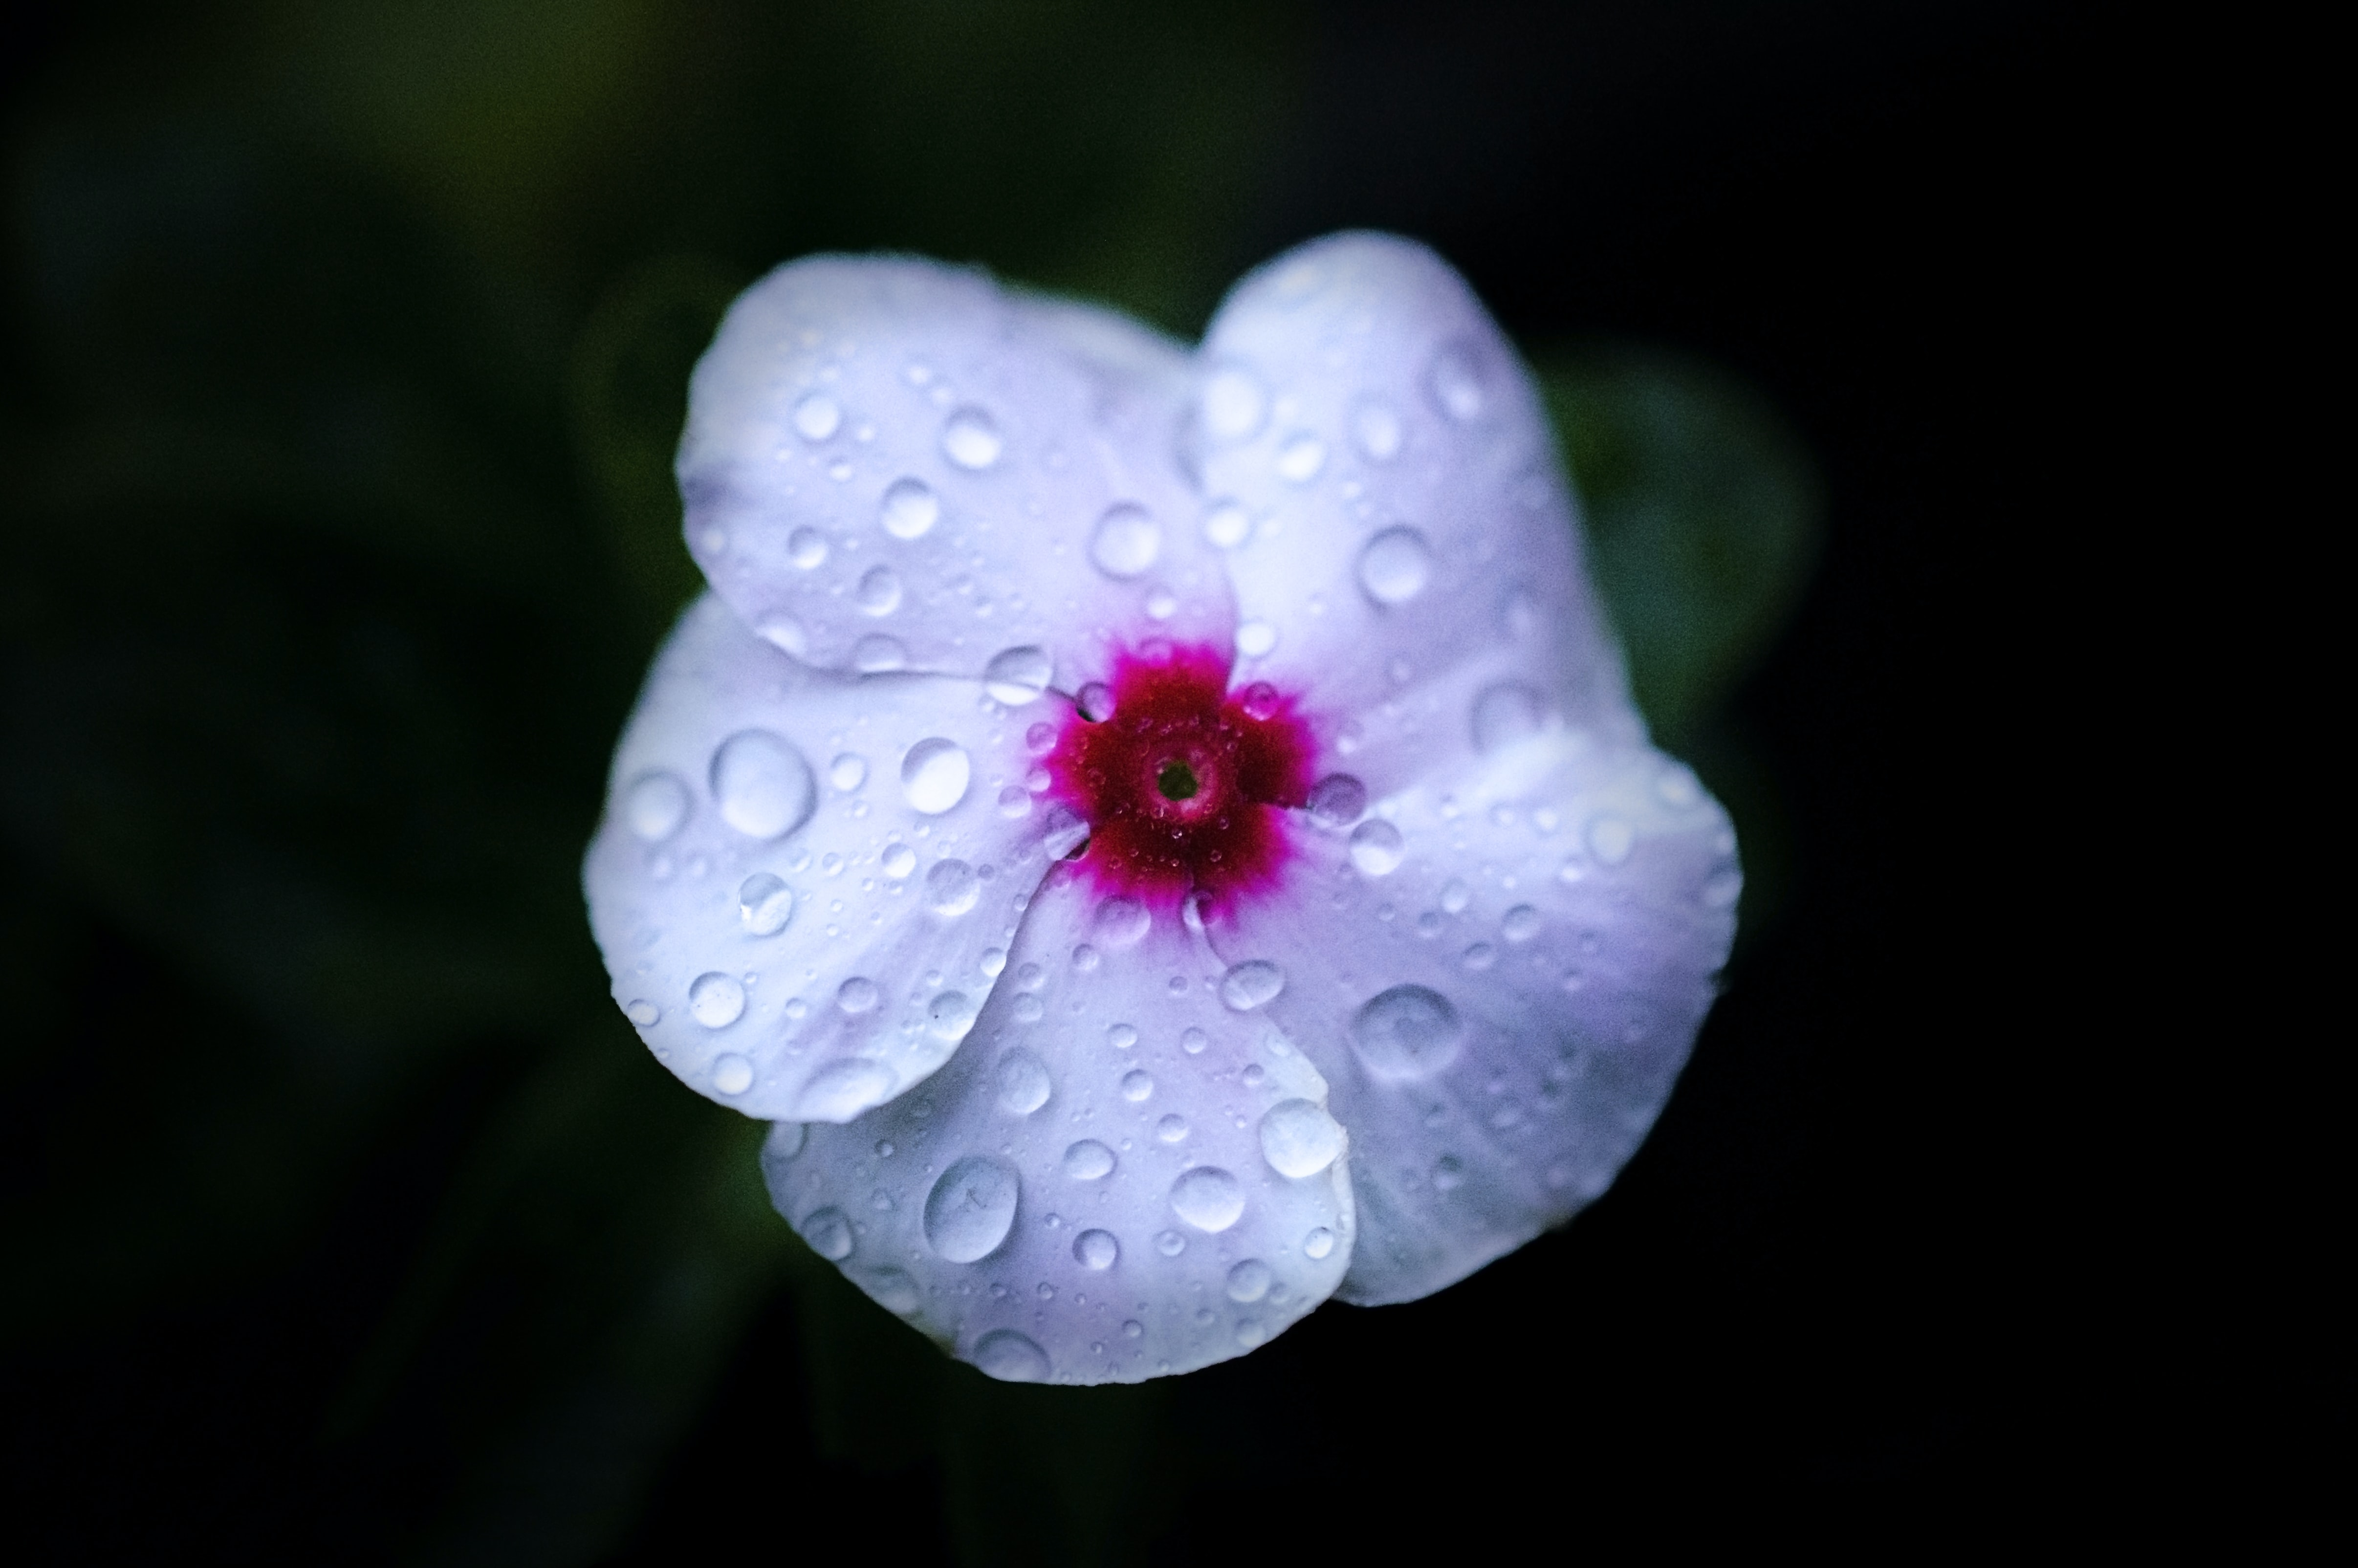 macro photo of white and pink moth flower with water drops